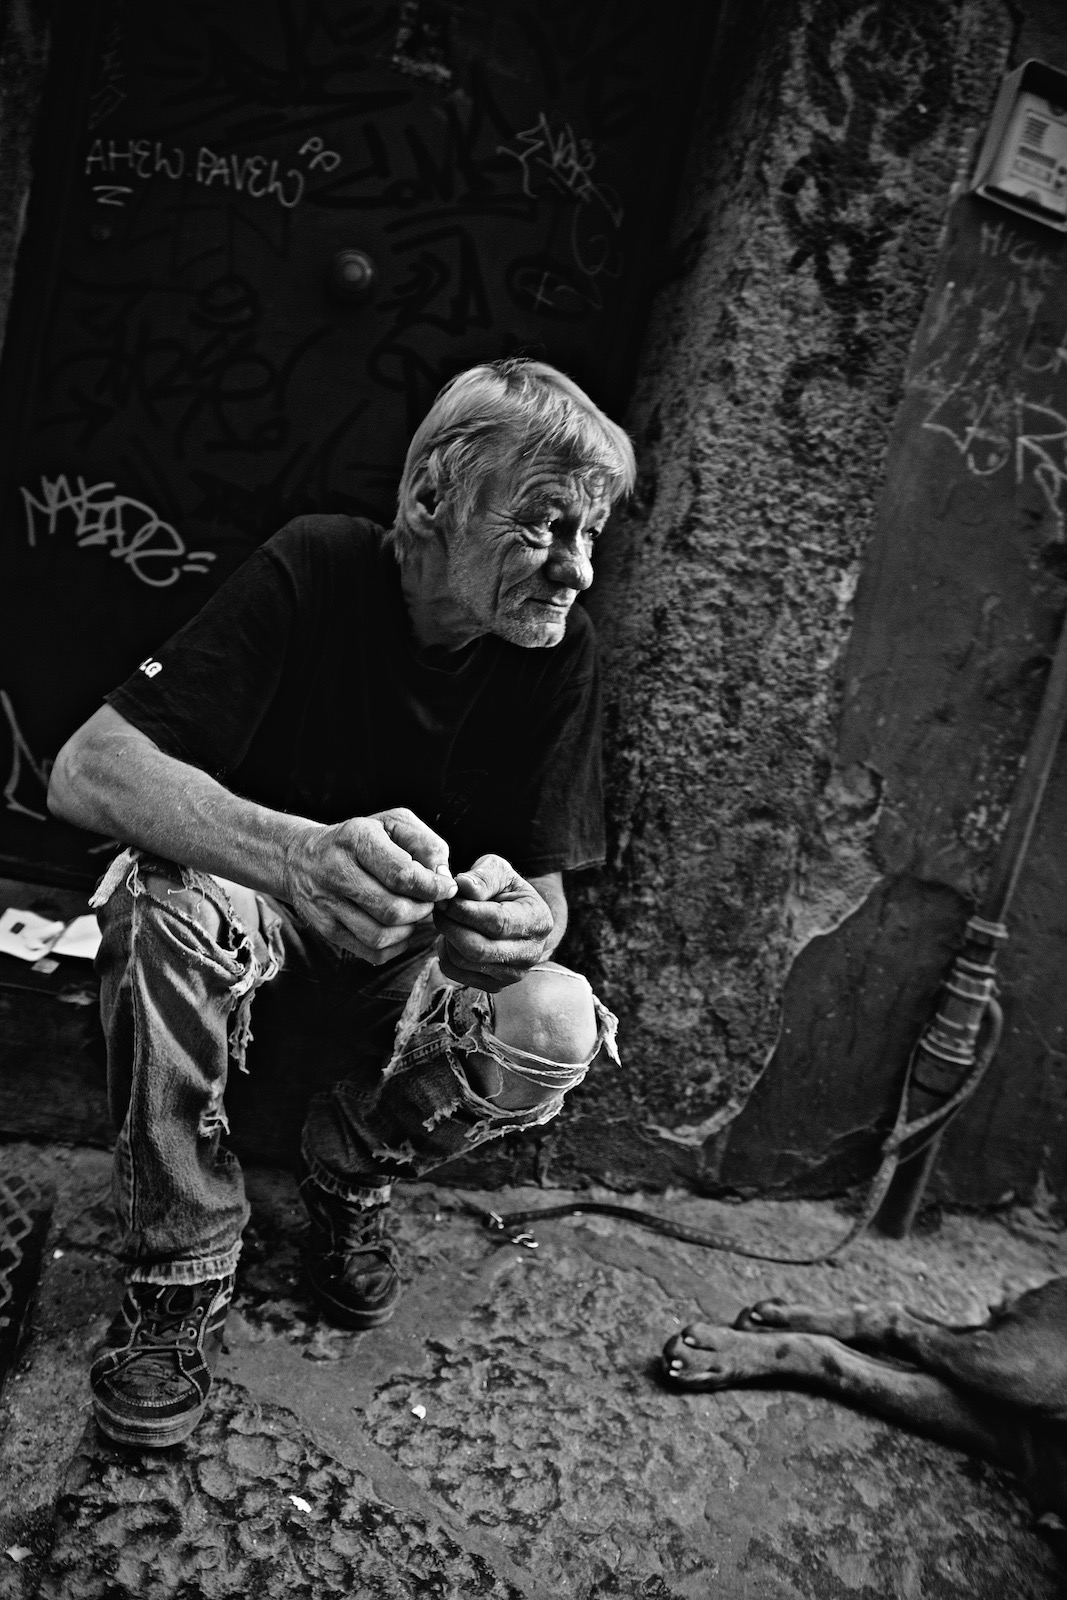 faces-of-napoli-denis-bosnic-photography-naples-bw-spaccanapoli-summer-89.jpg